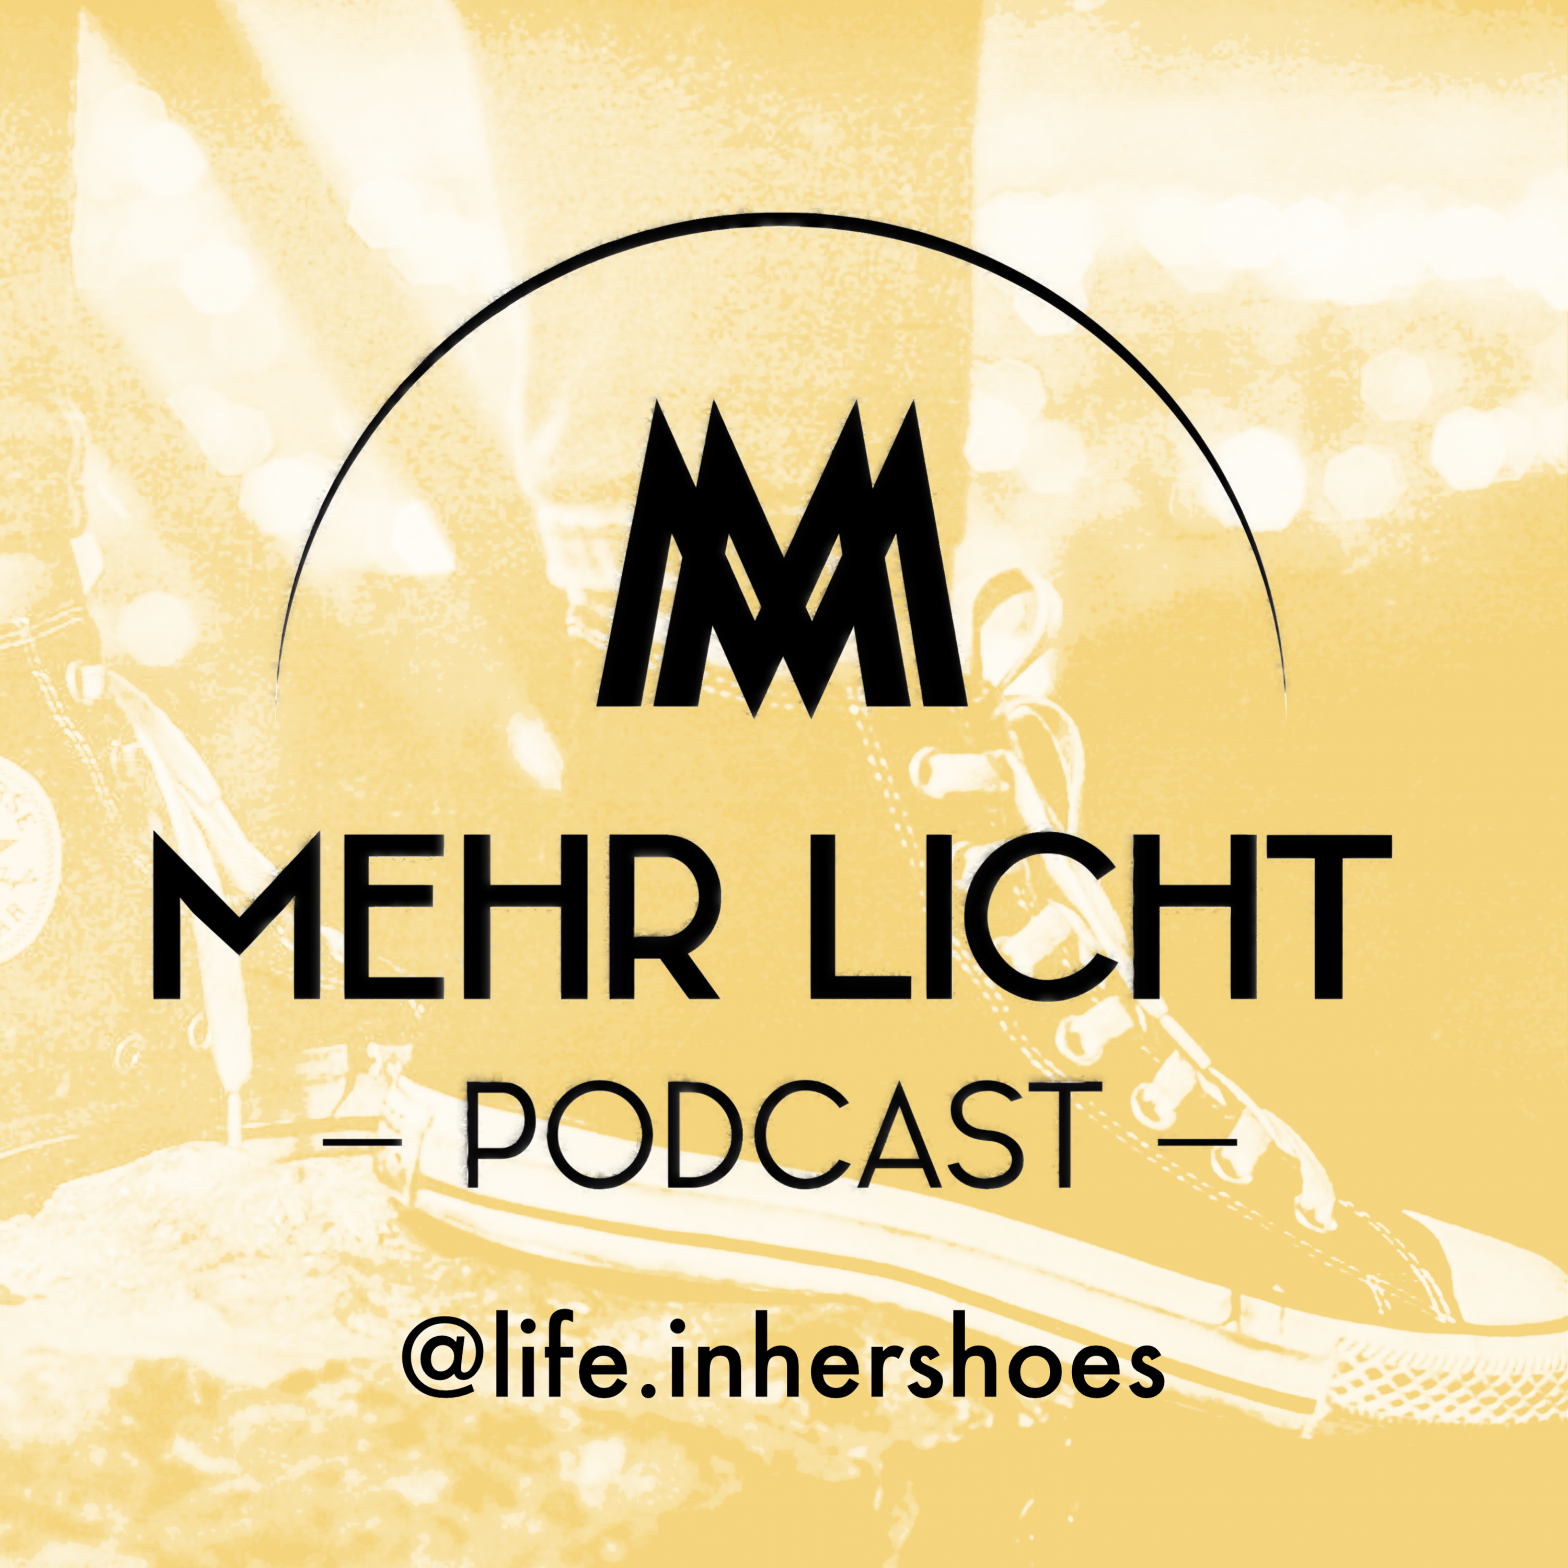 ml011 @life.inhershoes